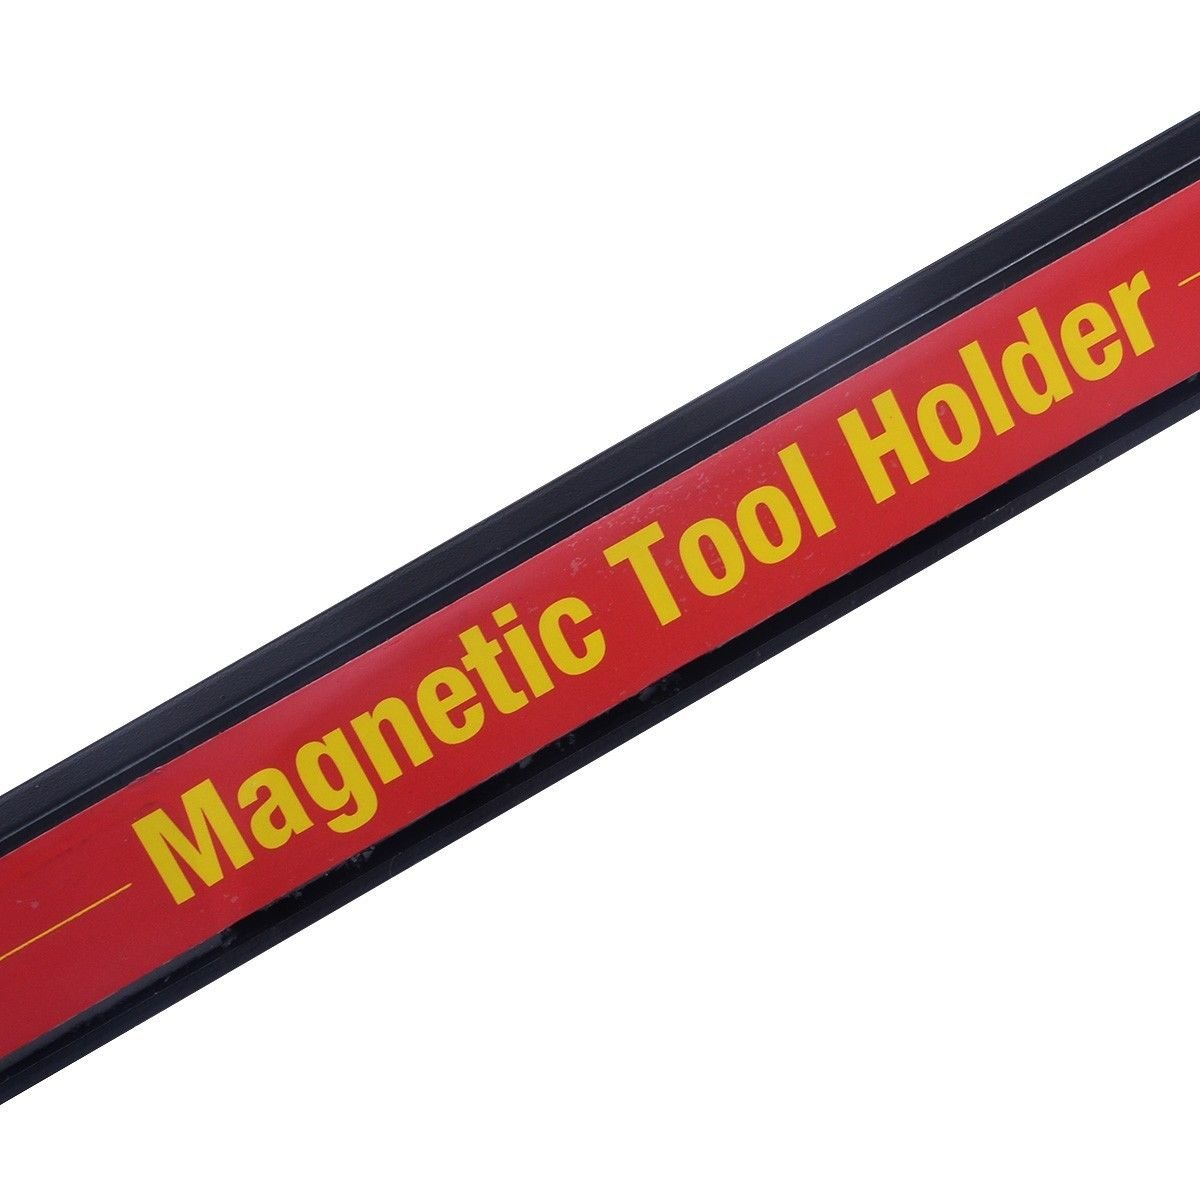 New 24''Magnetic Tool Holder Bar Organizer Storage Rack Knife Wrench Pilers Workshop by totoshop (Image #5)